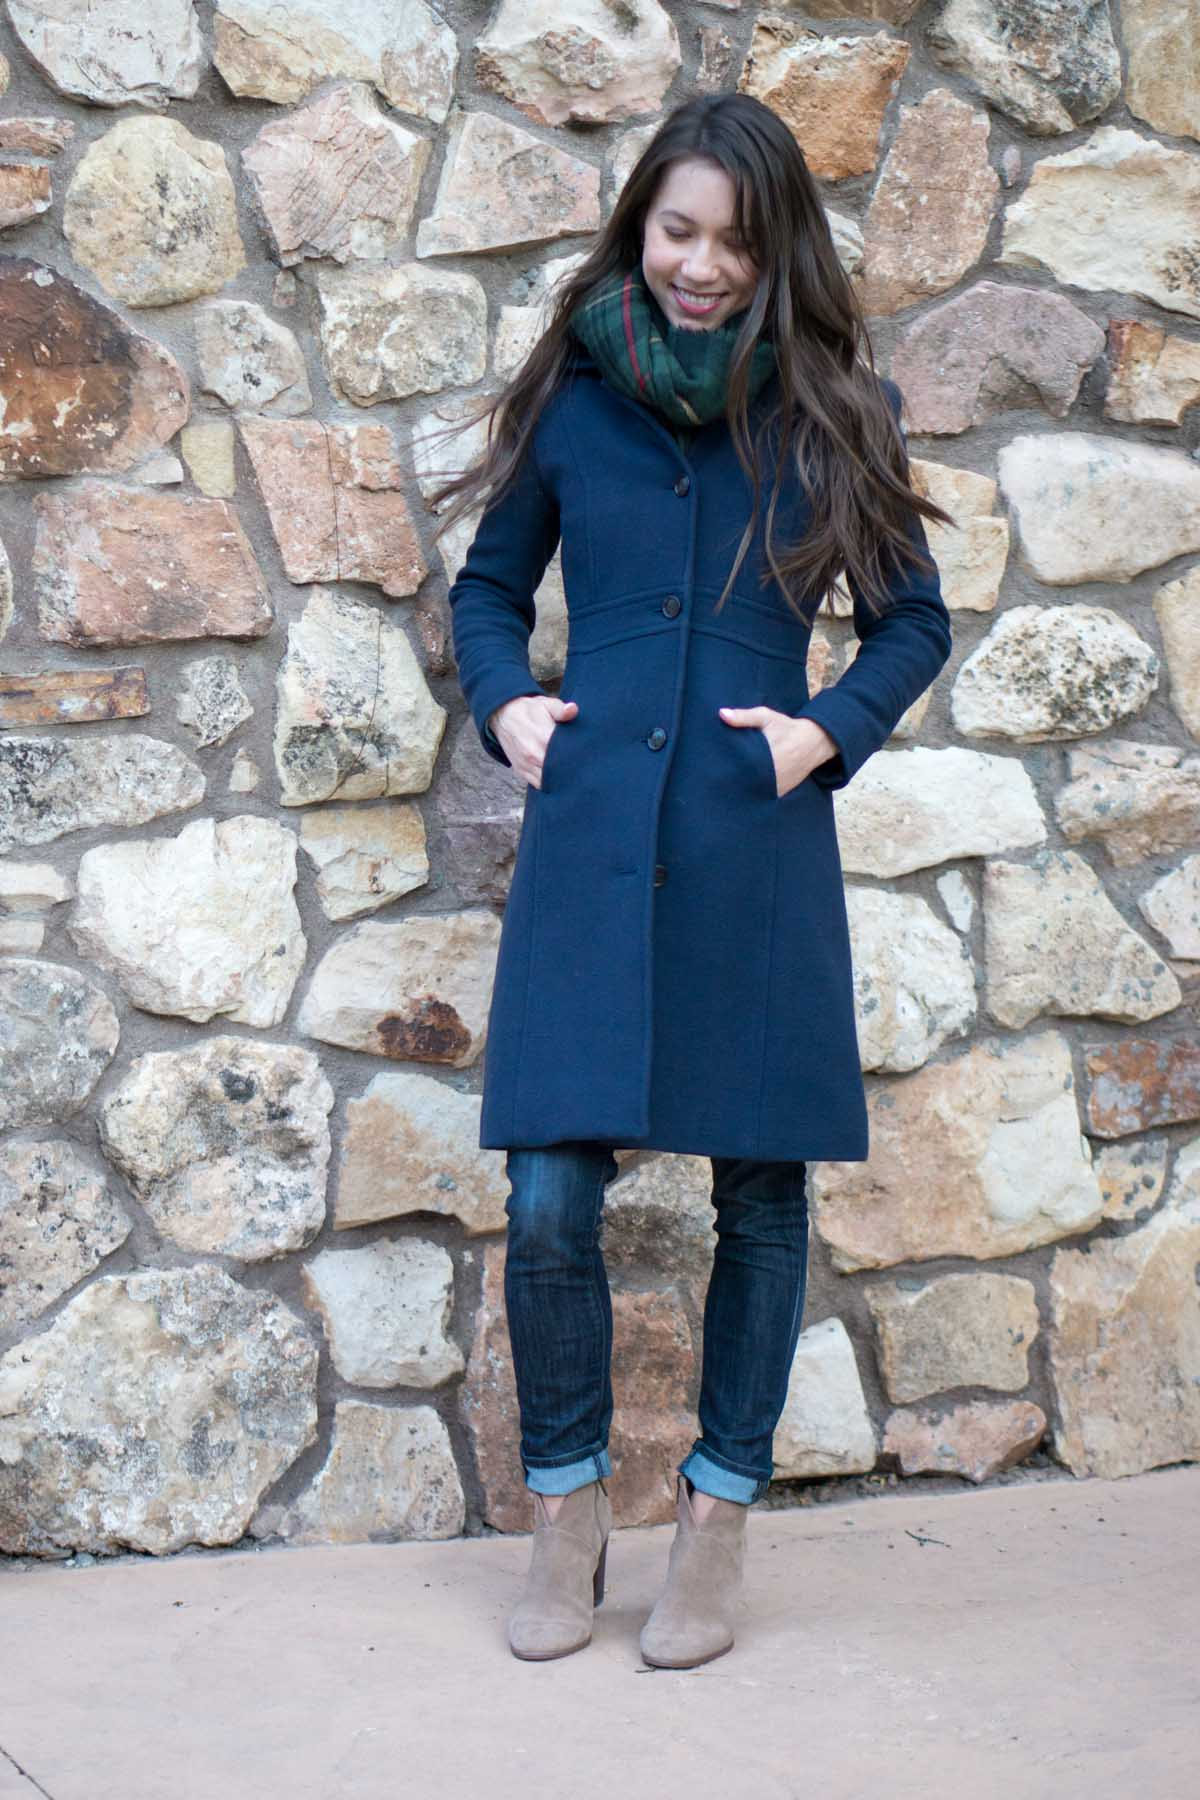 wardrobe essentials j crew lady day coat review petite 0 #0: petite style script j crew double cloth lady day coat review thinsulate paige denim sole society scarf vince camuto franell booties 7